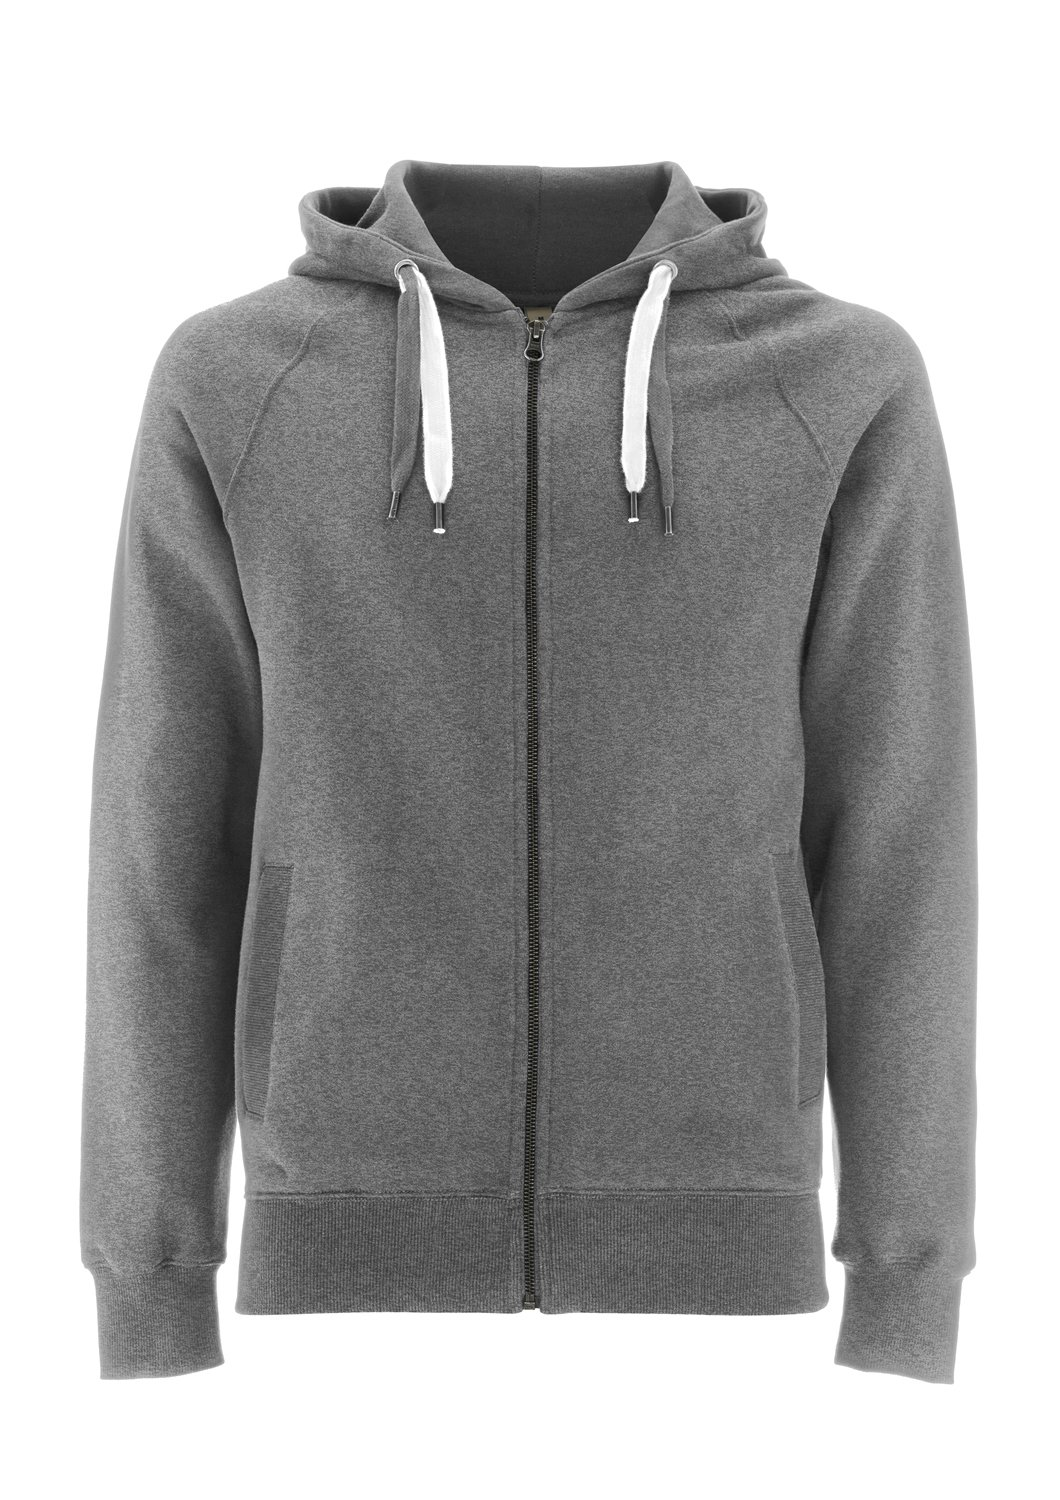 Melange Grey Hoodie for Men - Large - Mens Zipper Zip Up Cotton Sweatshirt by Underhood of London